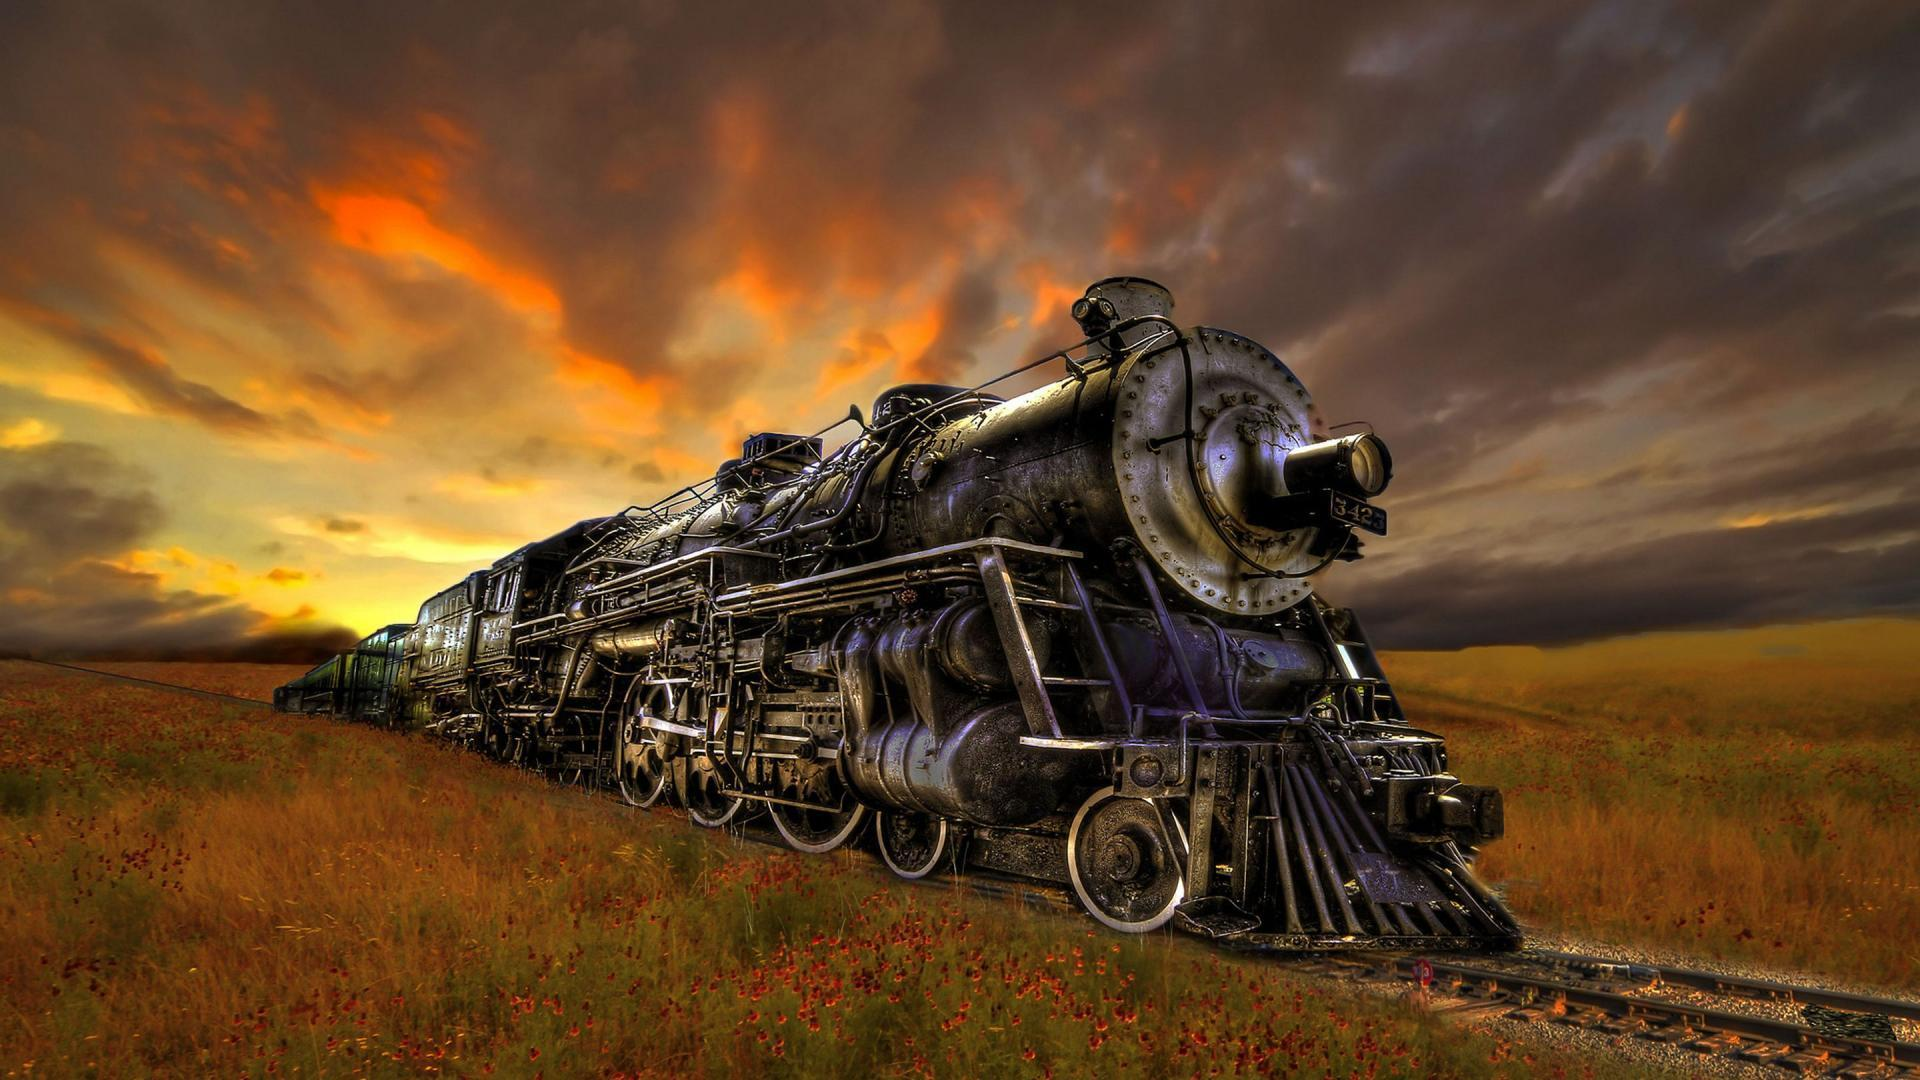 ÎÏÎ¿ÏέλεÏμα εικÏÎ½Î±Ï Î³Î¹Î± Steam Train wallpaper